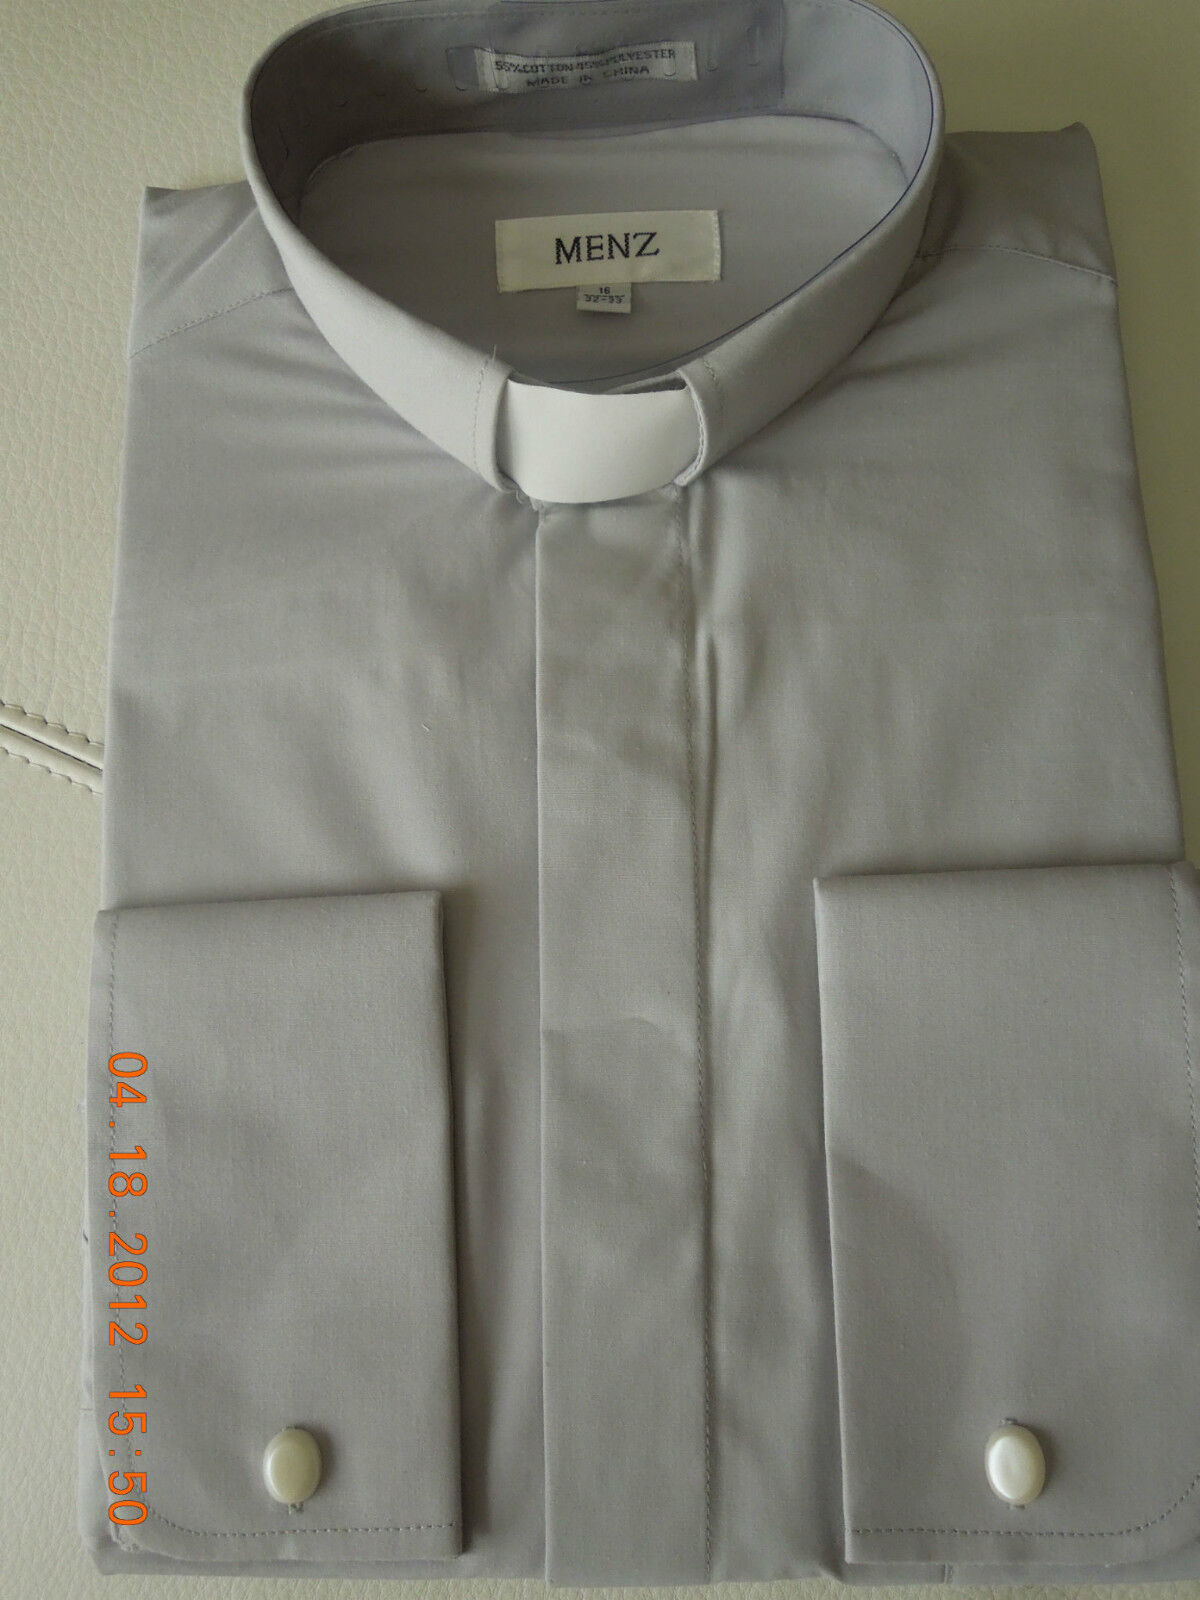 MENZ Mens Clergy Shirt (light Gray), French Cuff, Tab Col...